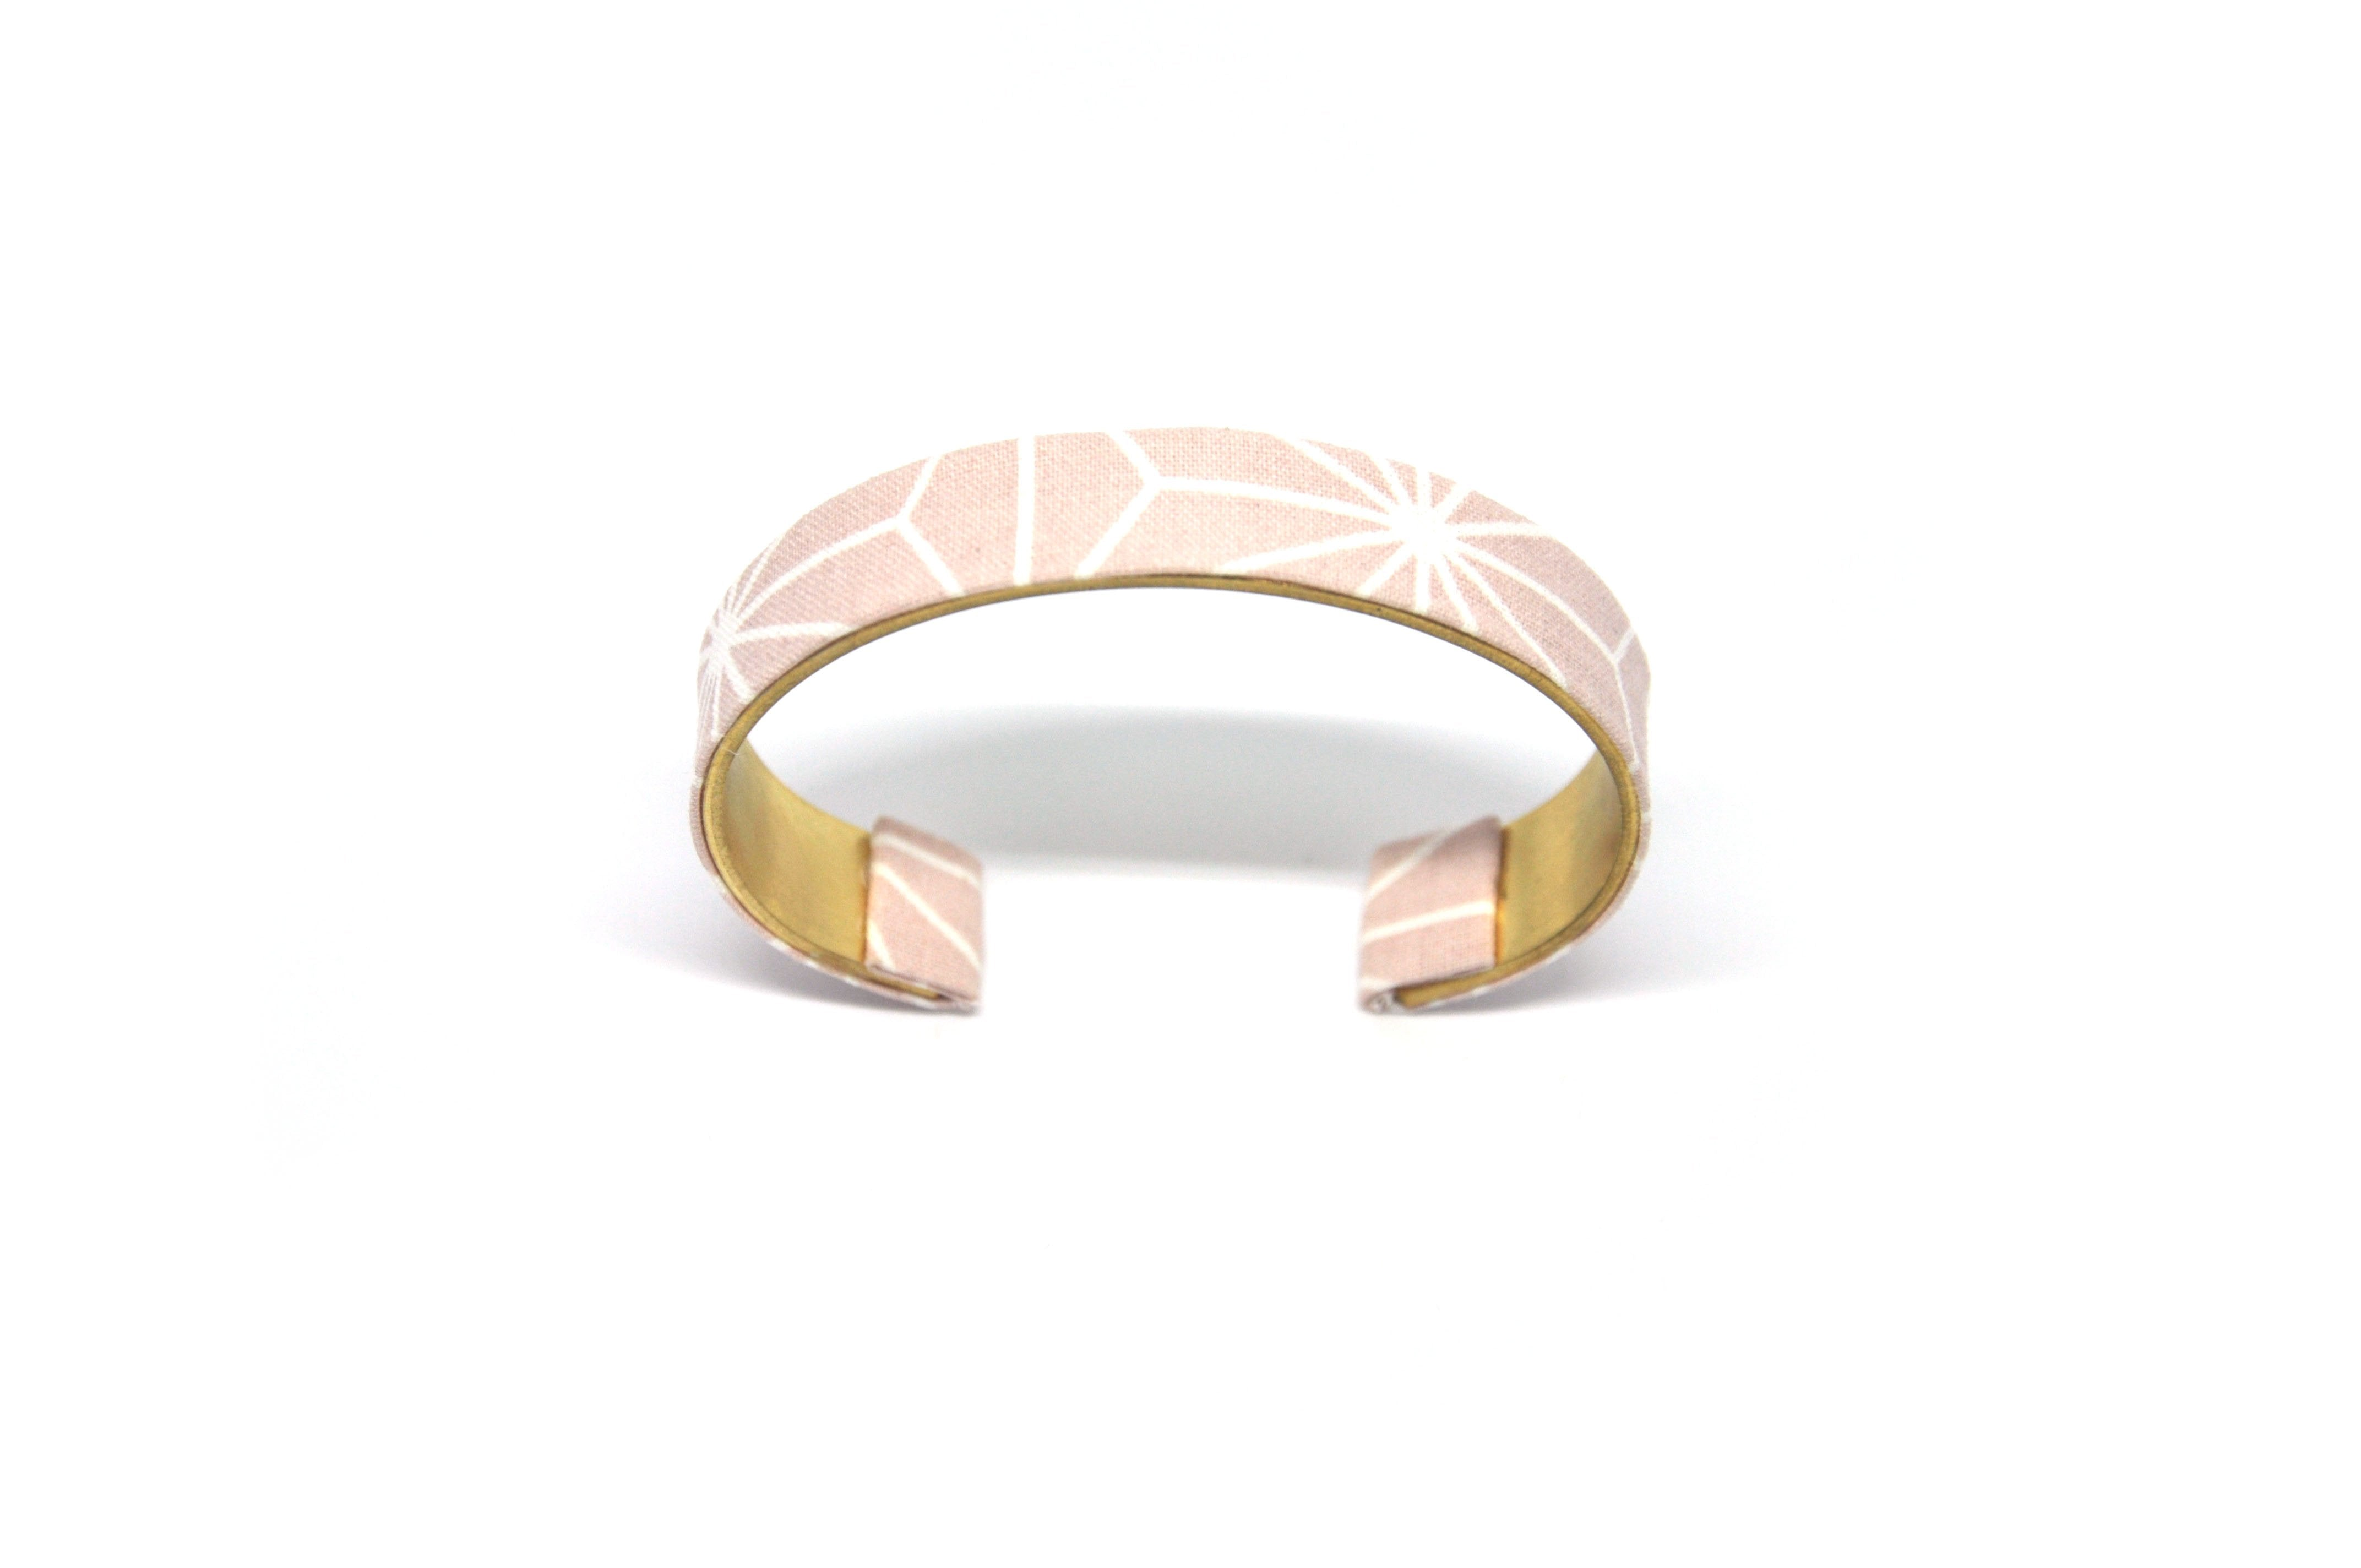 Bracelet Tendre rose